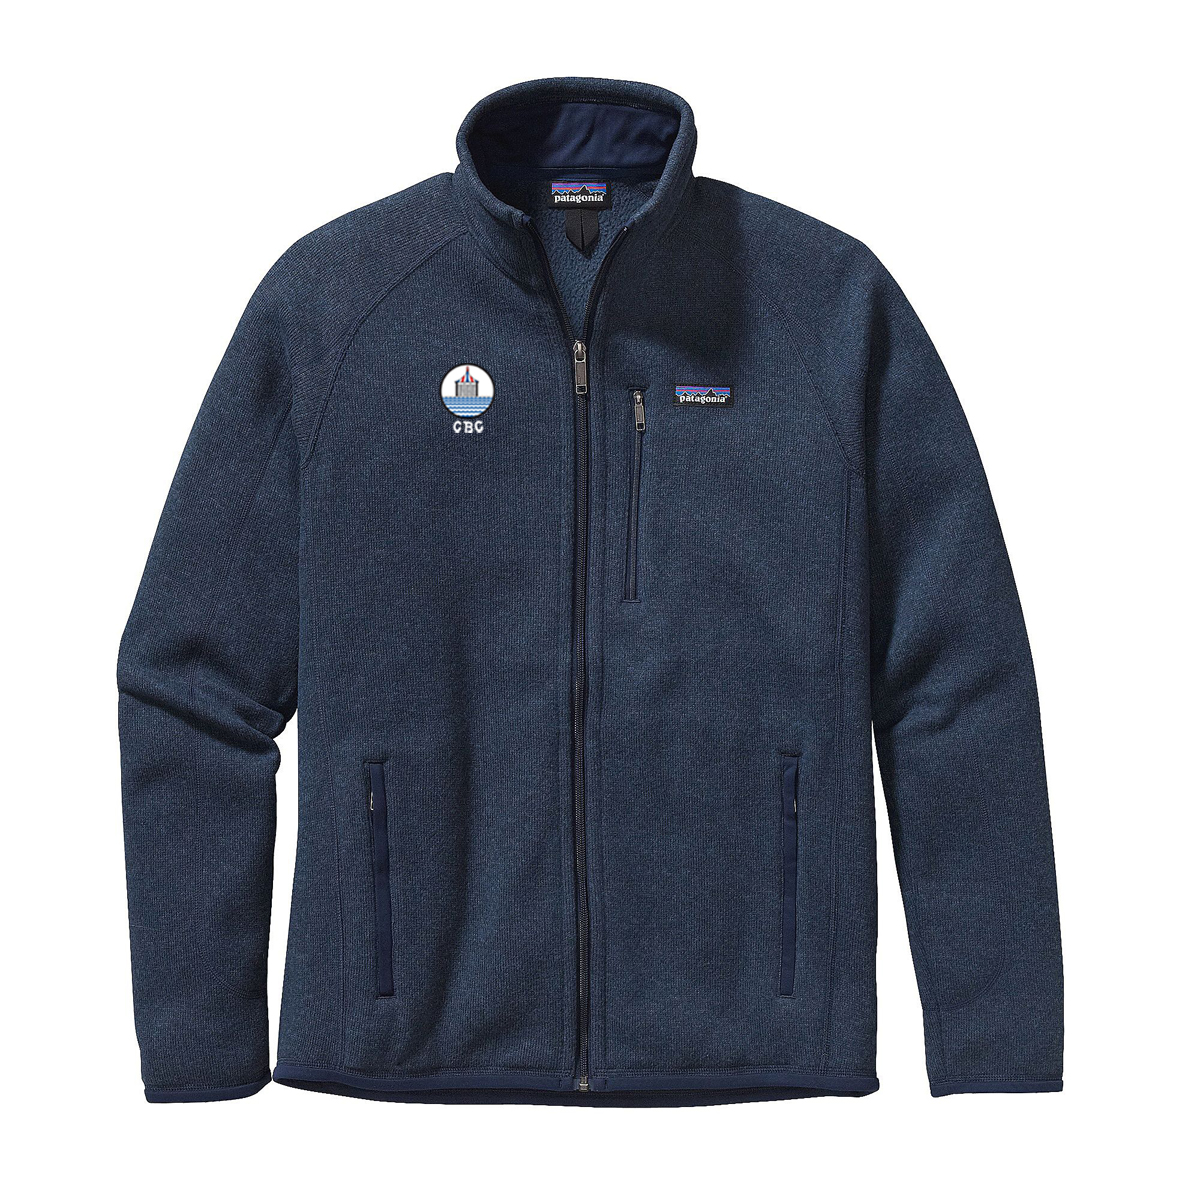 Chappaquiddick Beach Club - Men's Patagonia Better Sweater Jacket